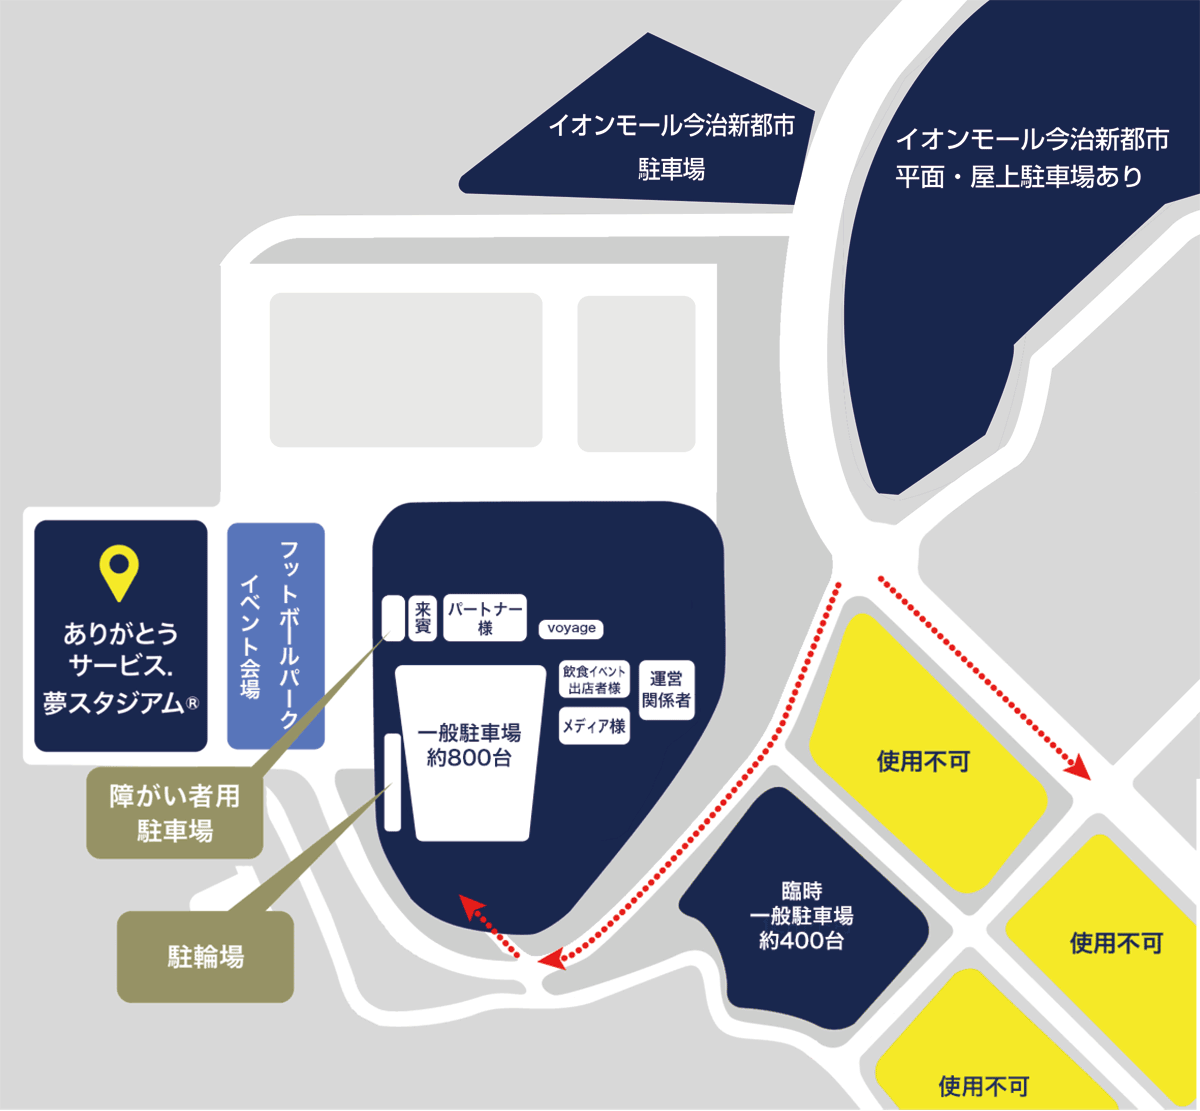 parking_map.png